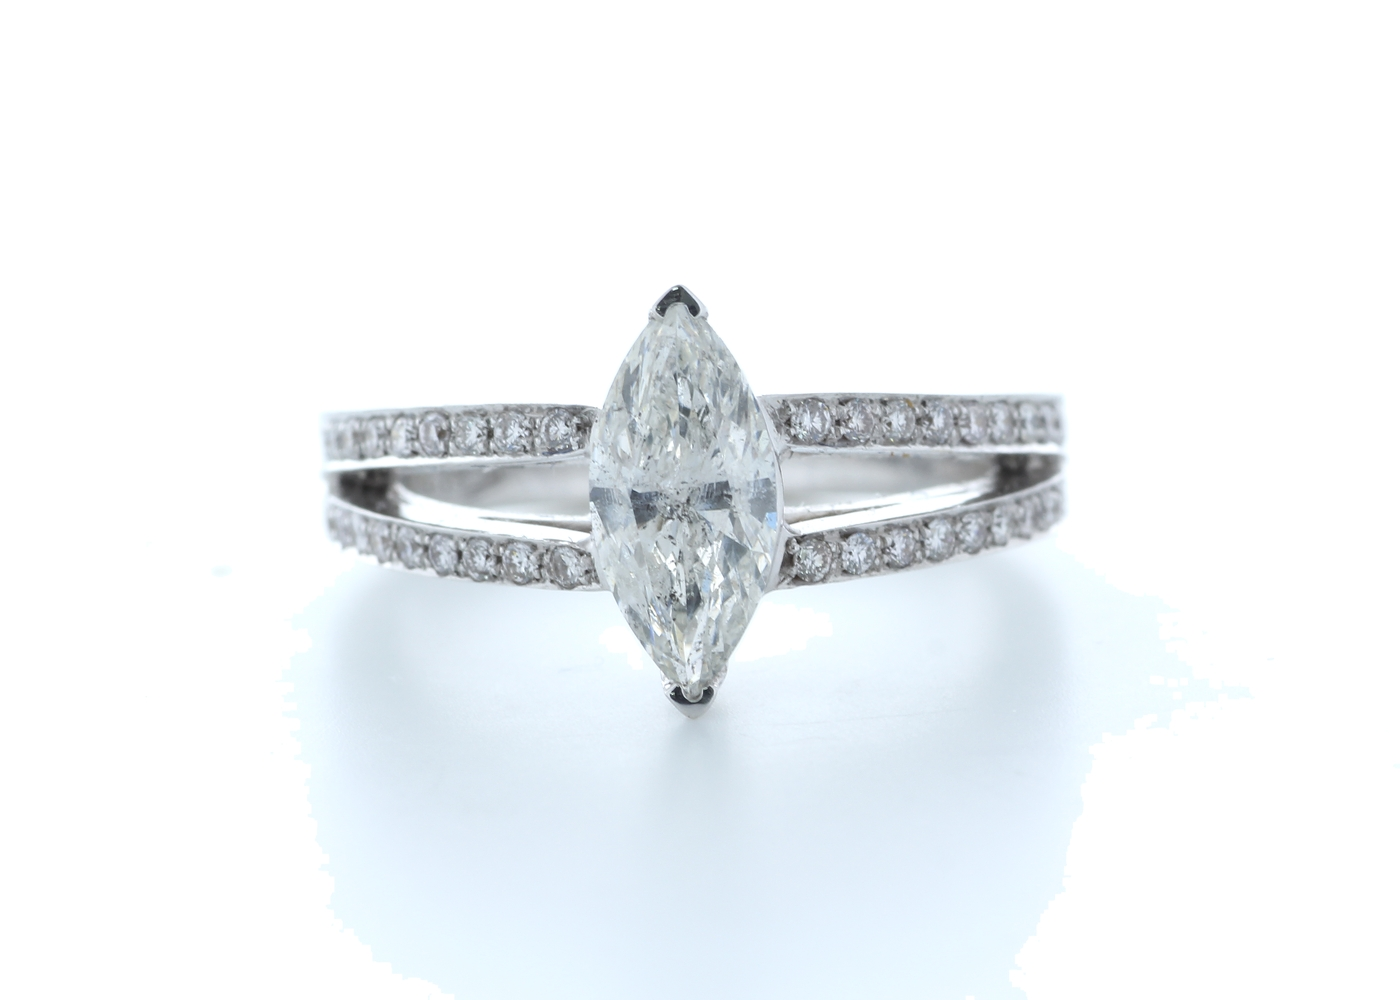 18k White Gold Marquise Cut Diamond Ring 1.41 (1.11) Carats